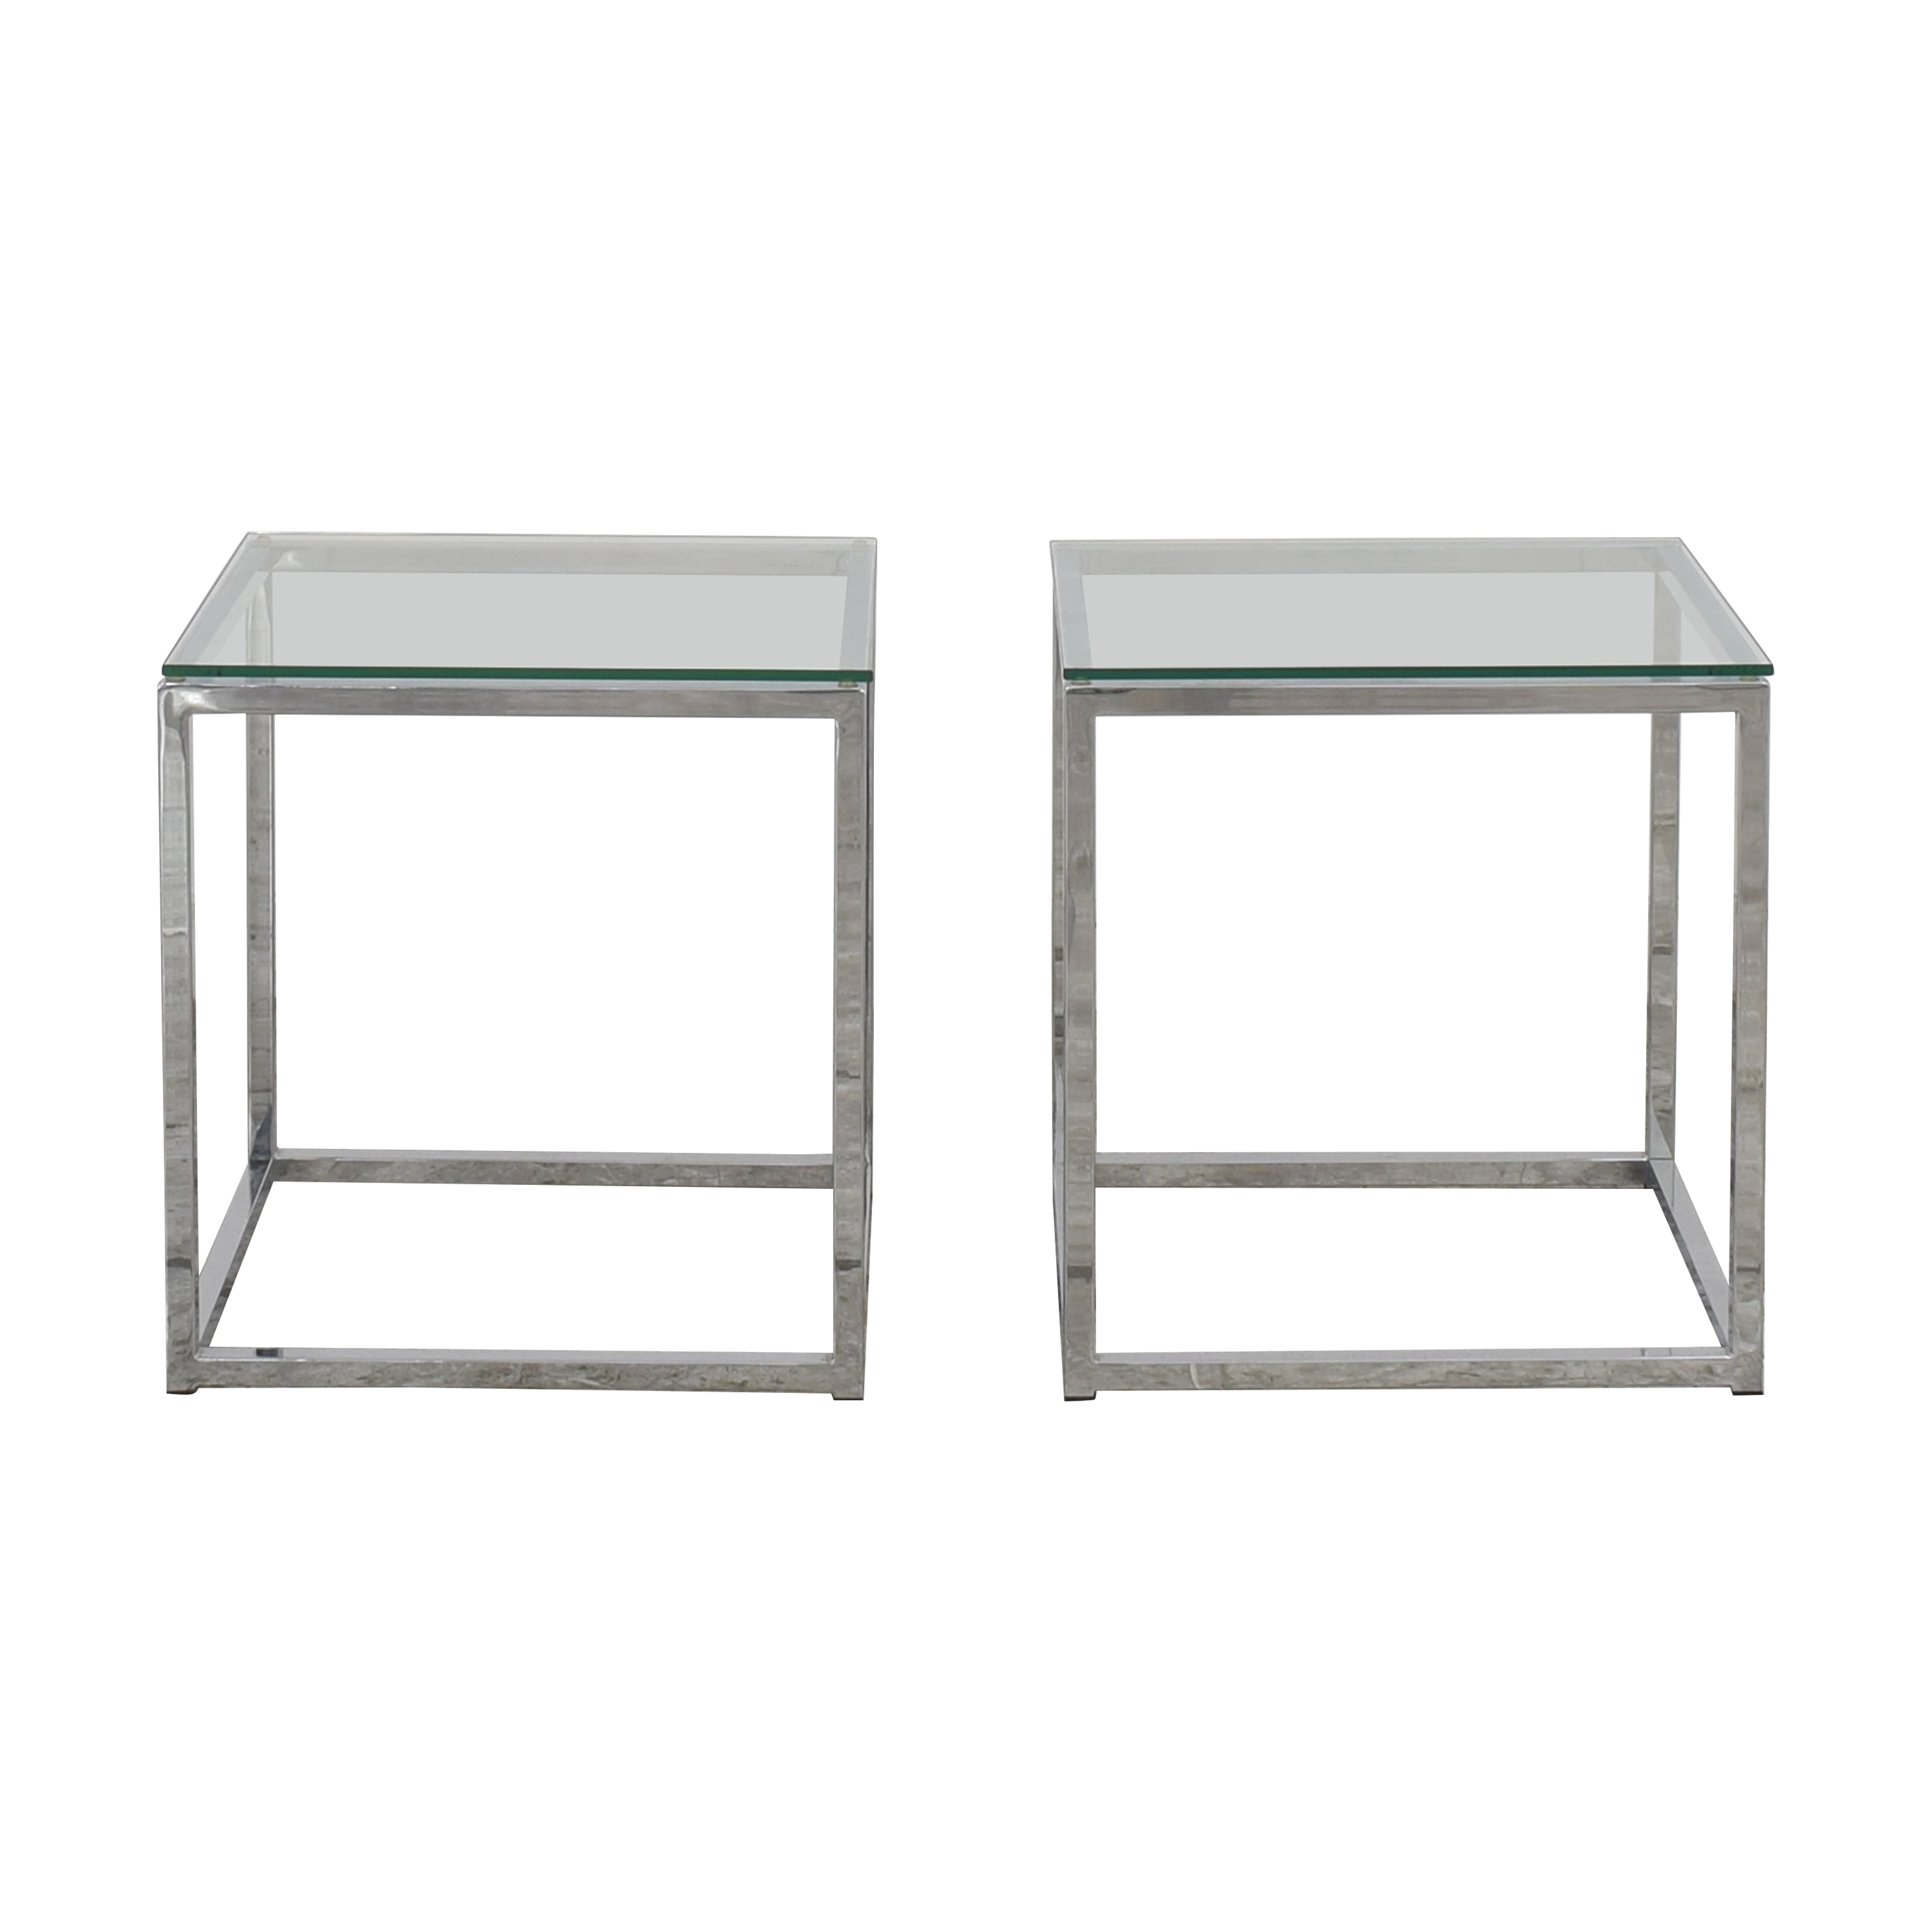 CB2 CB2 Square Top End Tables second hand